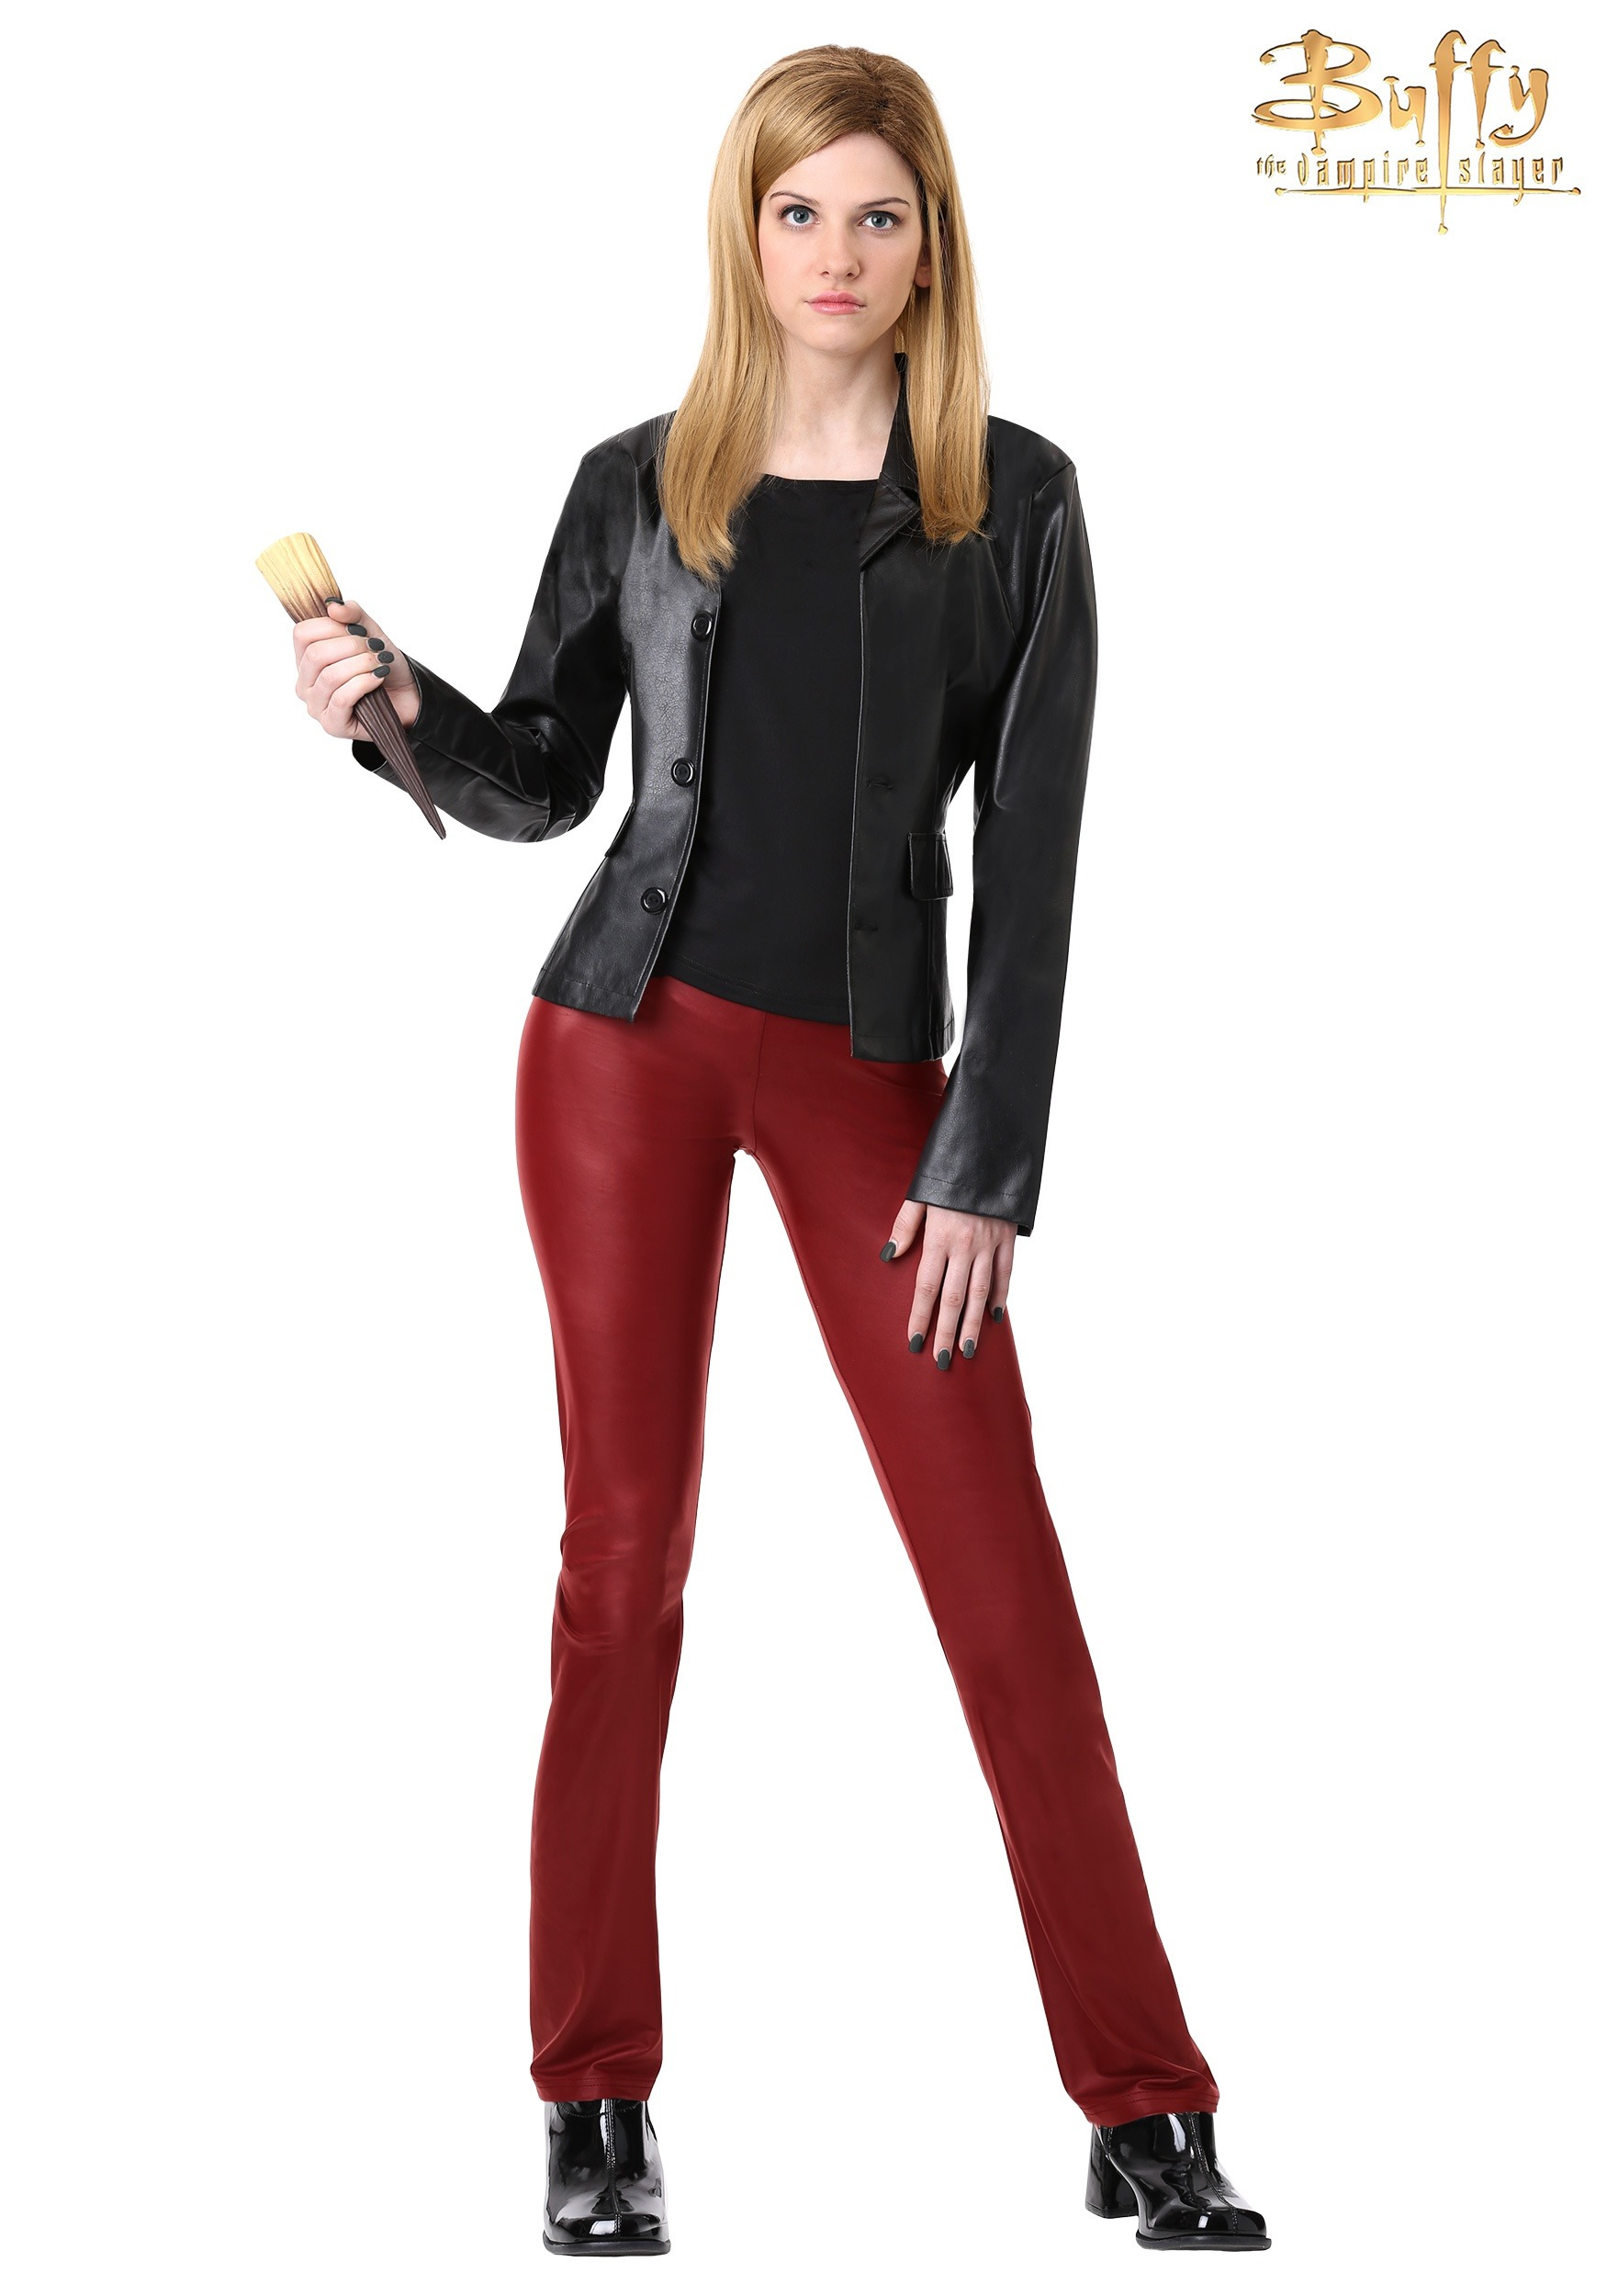 Buffy the V&ire Slayer Womenu0027s Costume  sc 1 st  Halloween Costumes & Womenu0027s Buffy the Vampire Slayer Costume